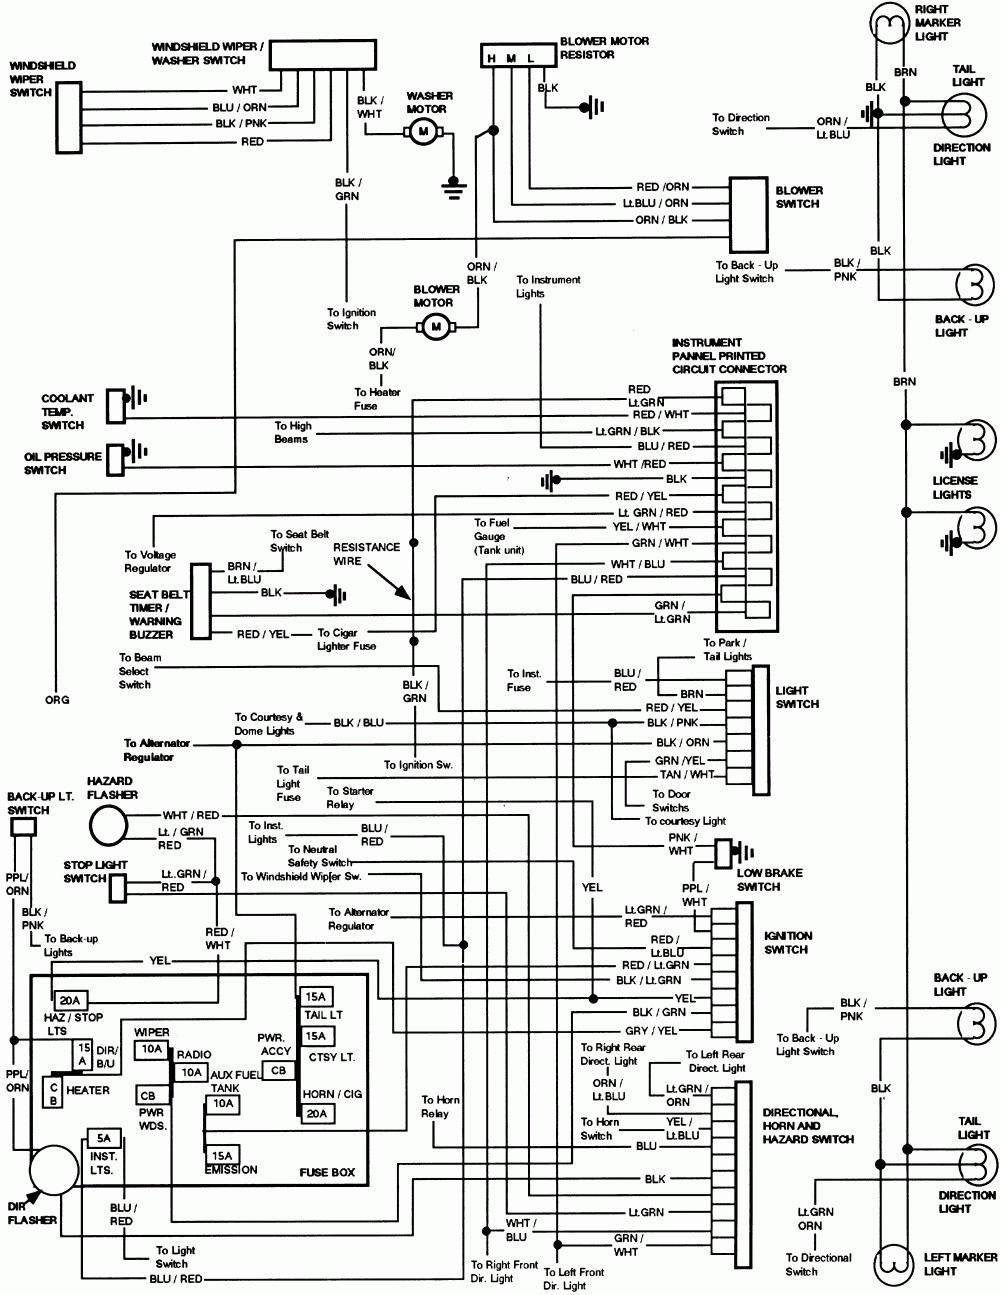 hight resolution of 1995 ford f 250 wiring diagram wiring diagram blog 1995 f250 wiring diagram wiring diagram article